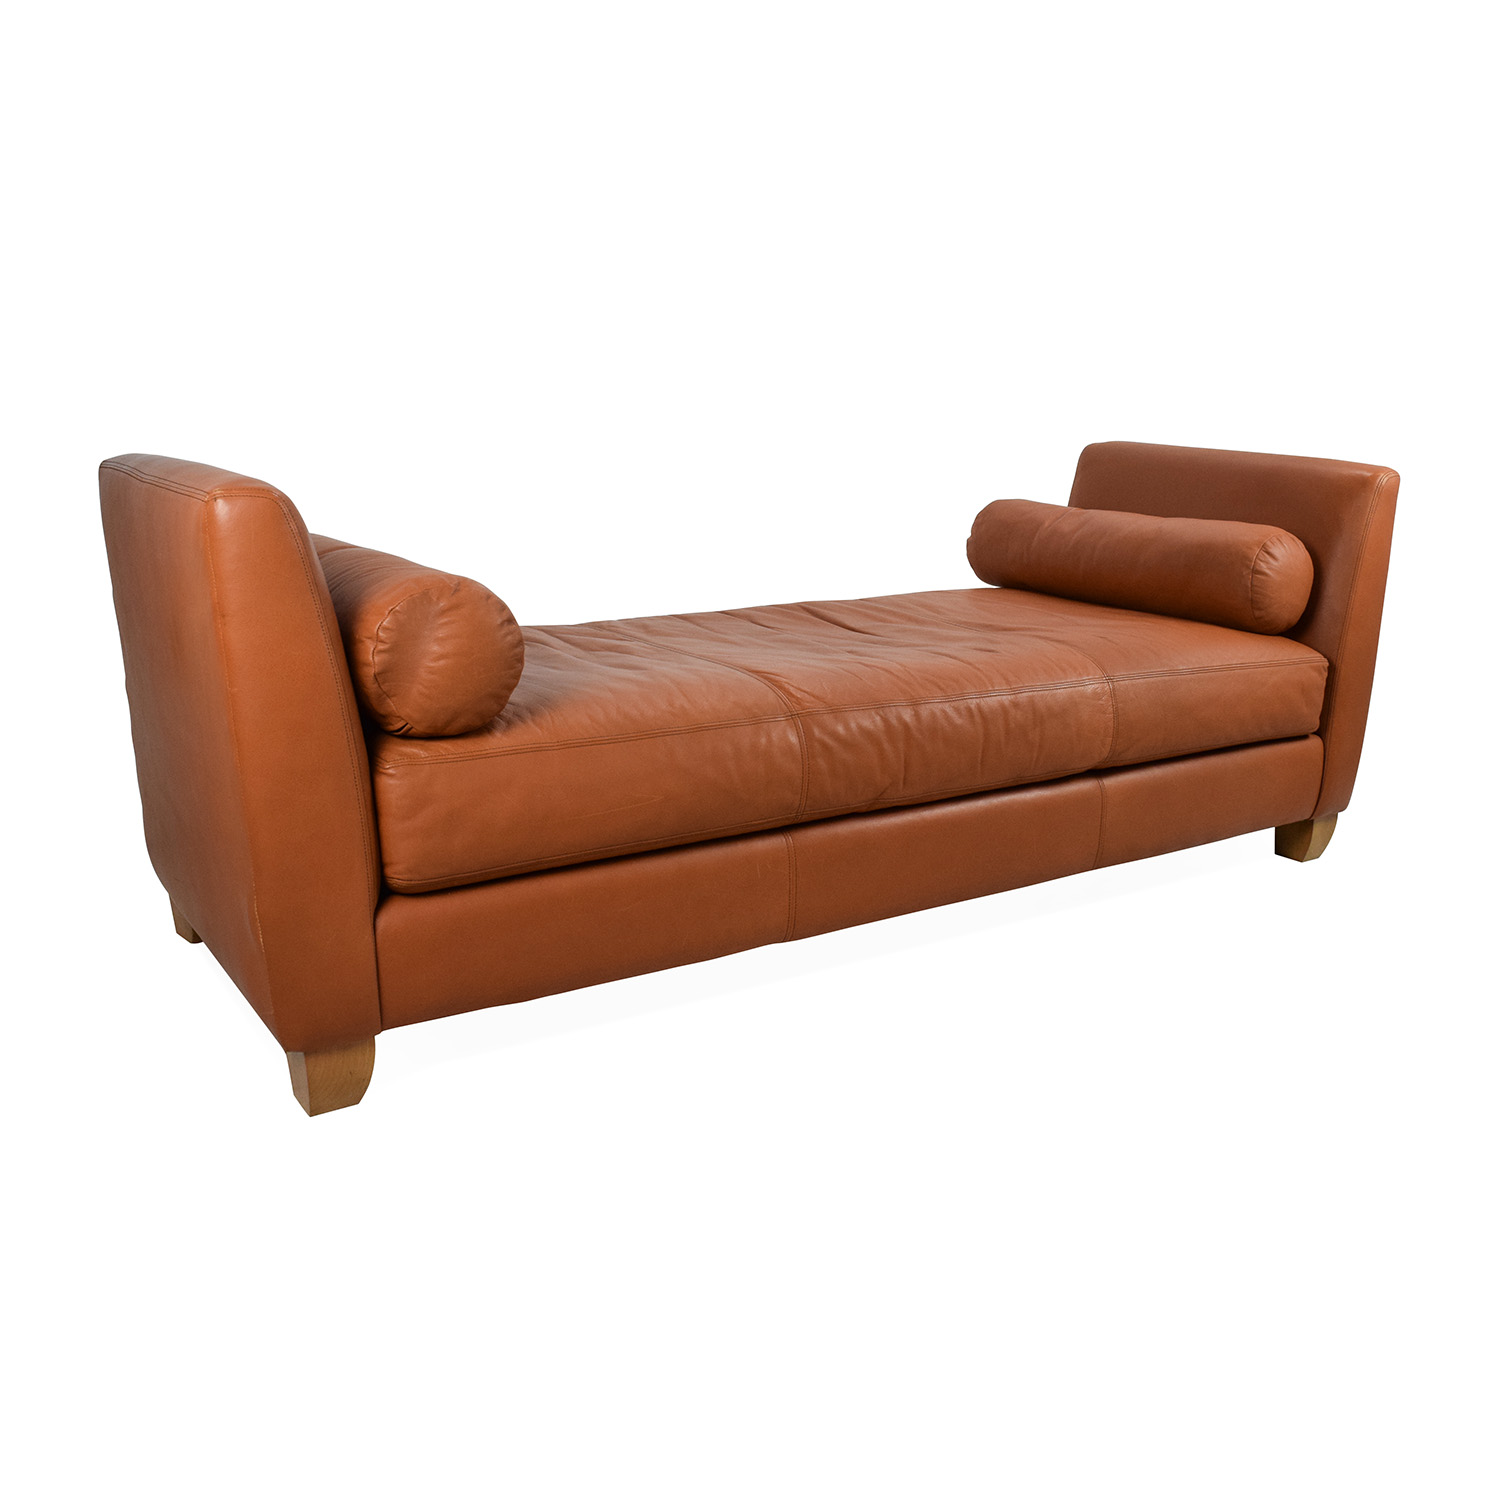 sofa bluebell chaise kerber tennis sofascore 88 off conrad orange leather daybed sofas